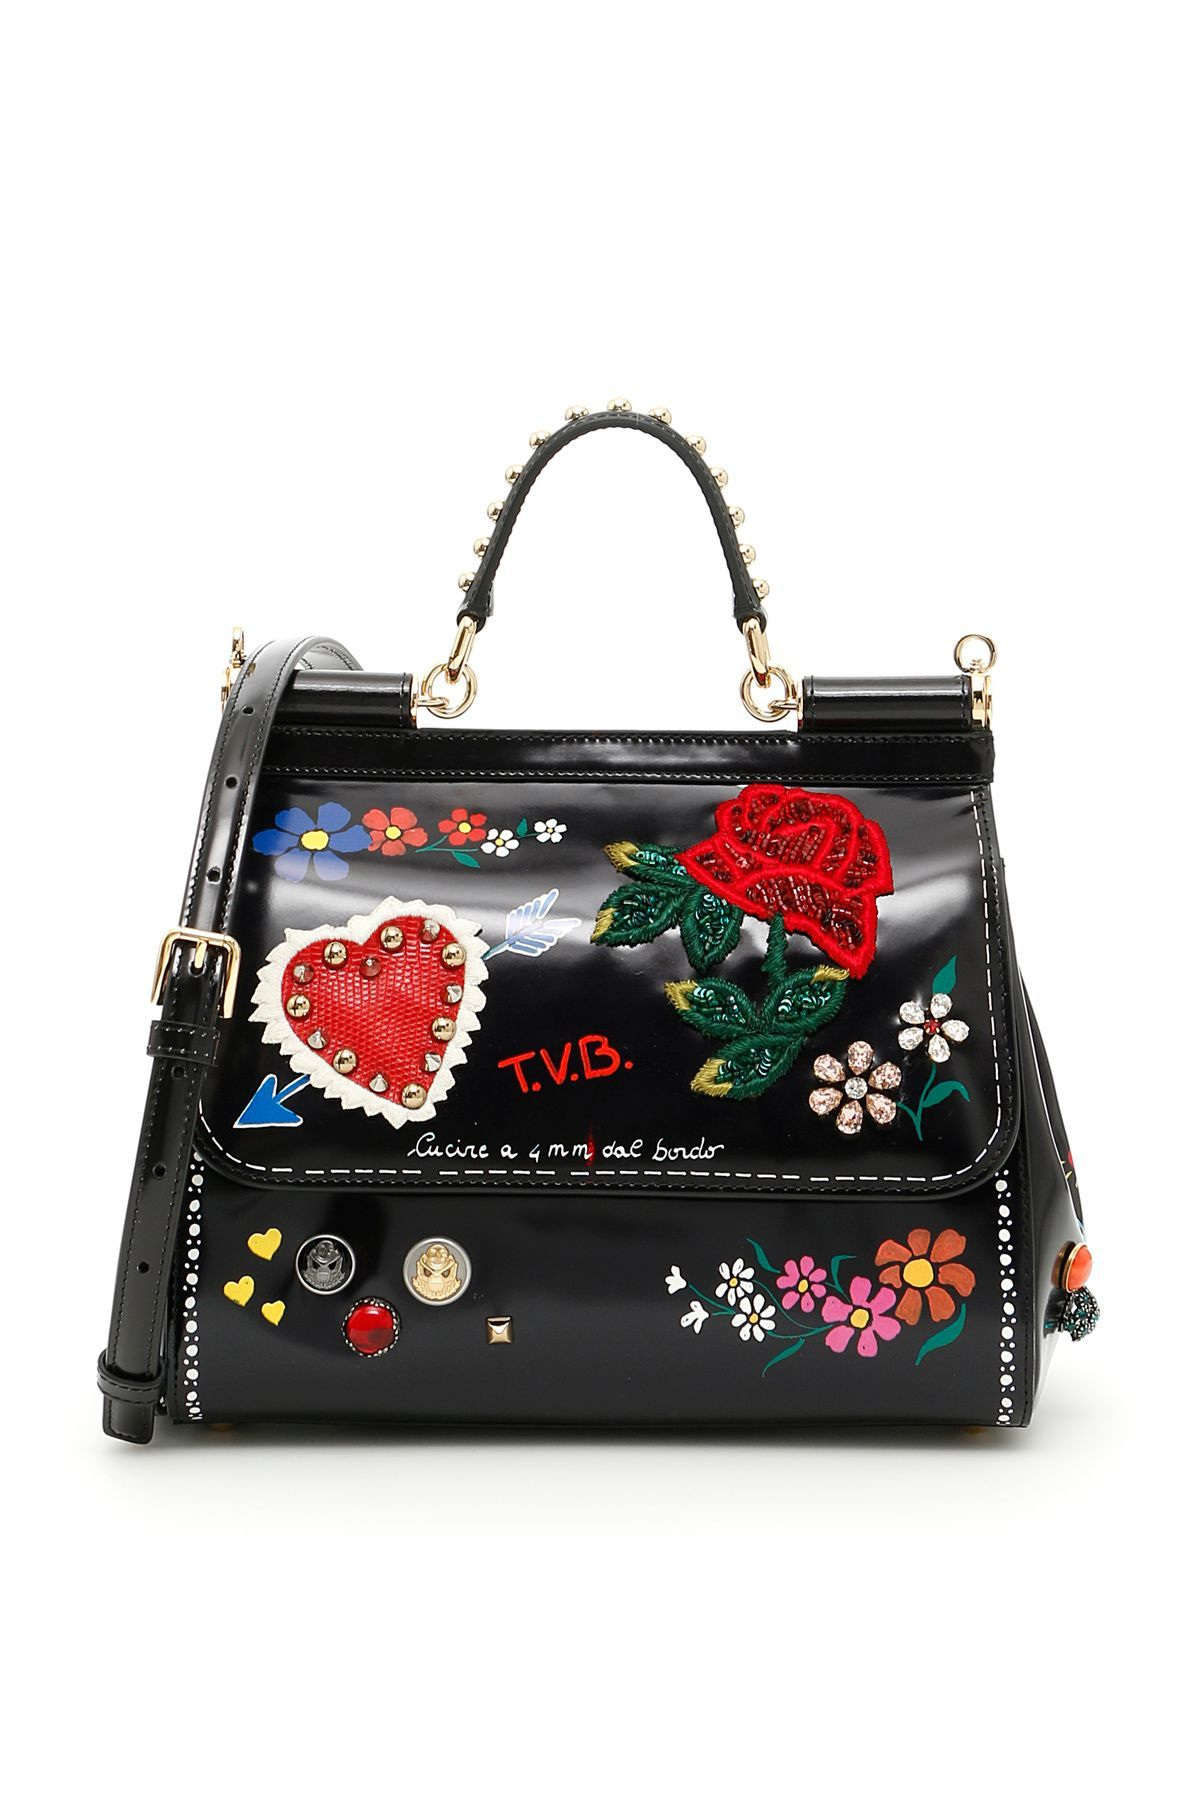 68d829bd5f29 DOLCE & GABBANA . #dolcegabbana #bags #shoulder bags #leather #lining  #crystal #